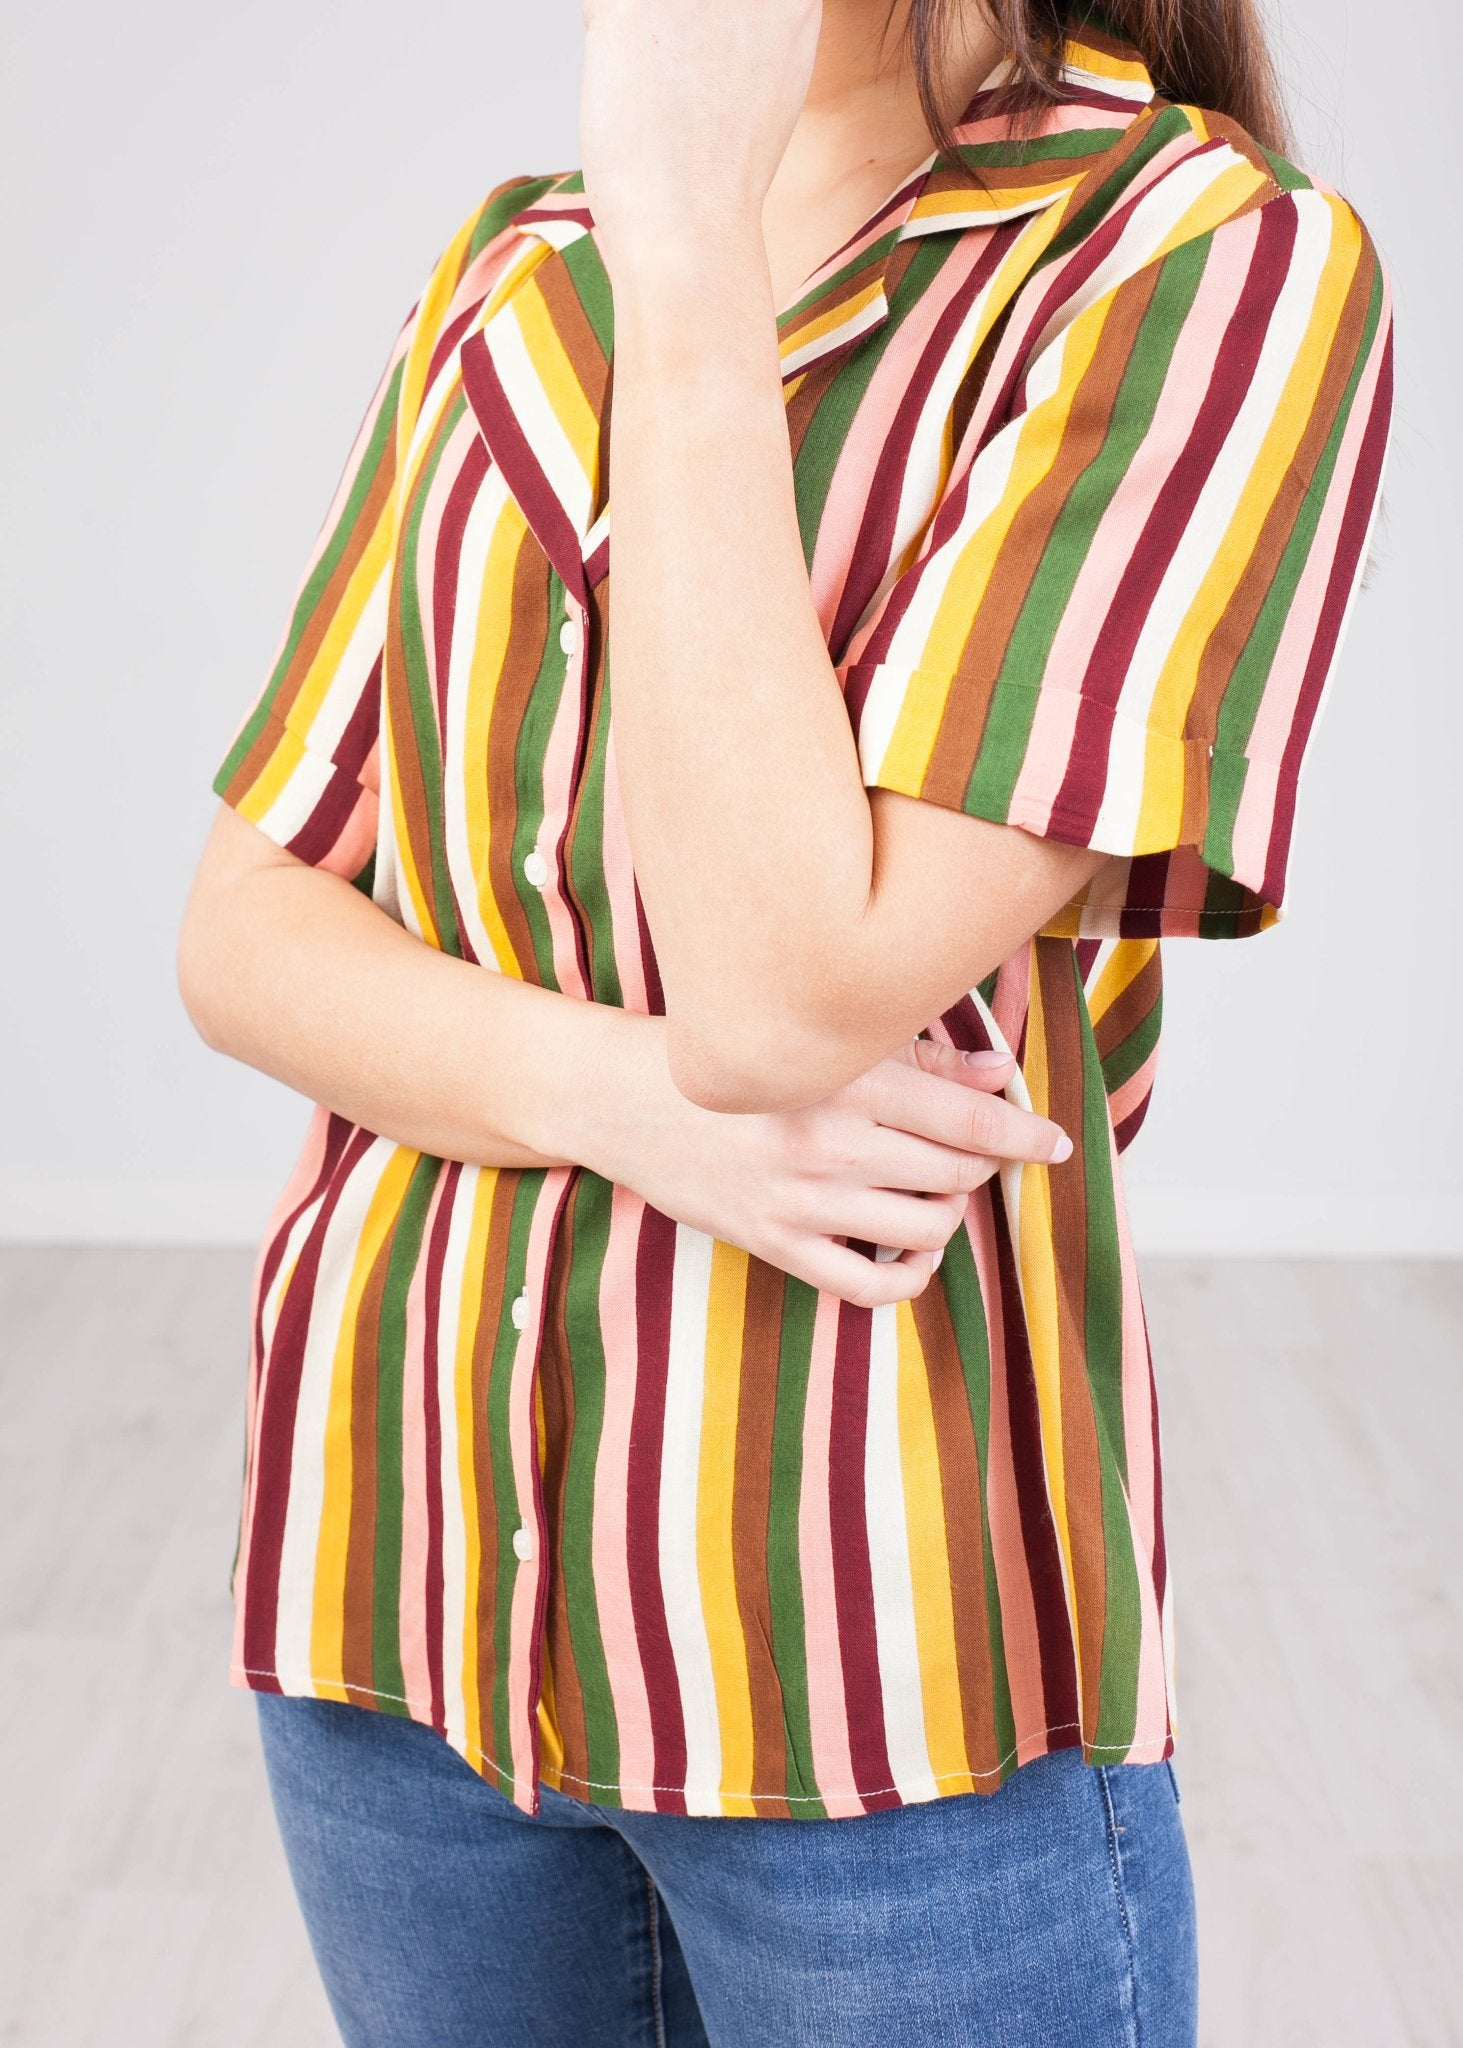 Frankie Stripe Shirt - The Walk in Wardrobe